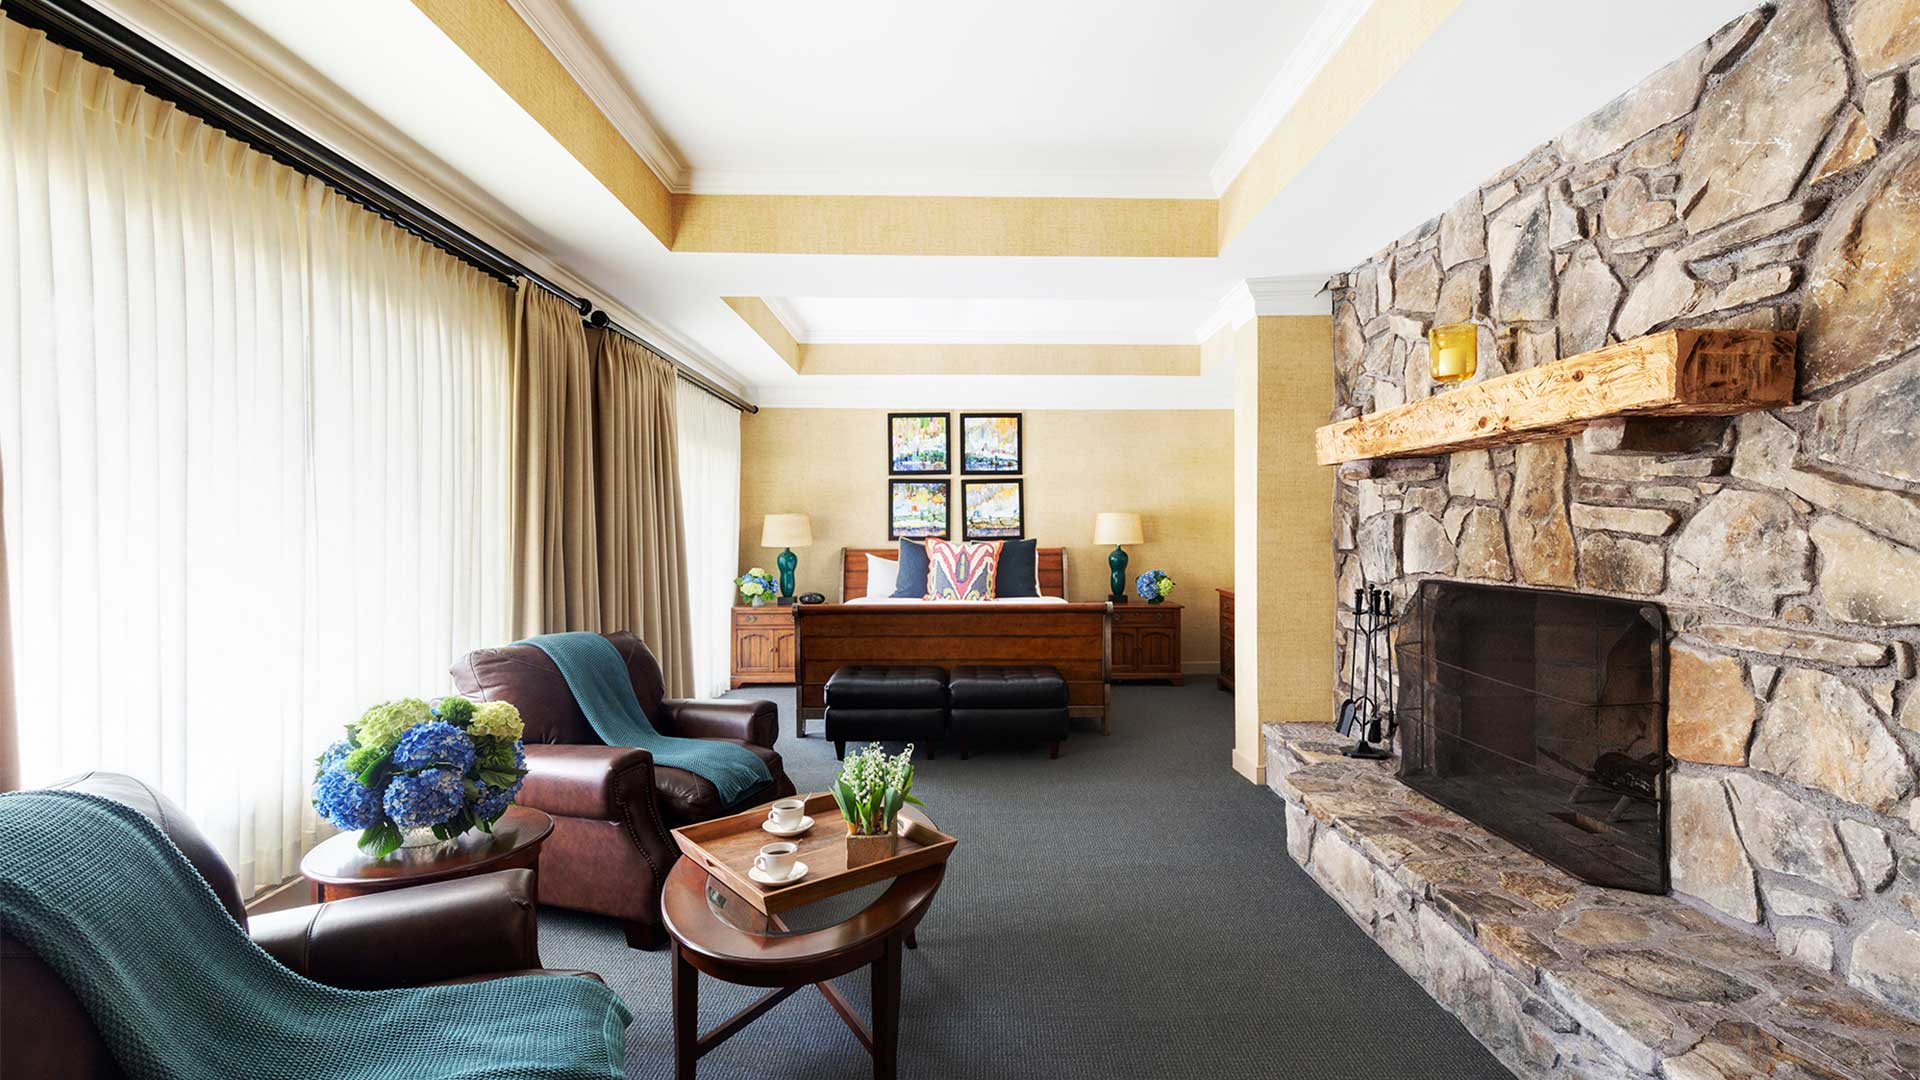 interior shot of a bedroom. There are brown leather chairs across from a large stone fireplace. There is a bed on the other side of the room with tables on either side of it.